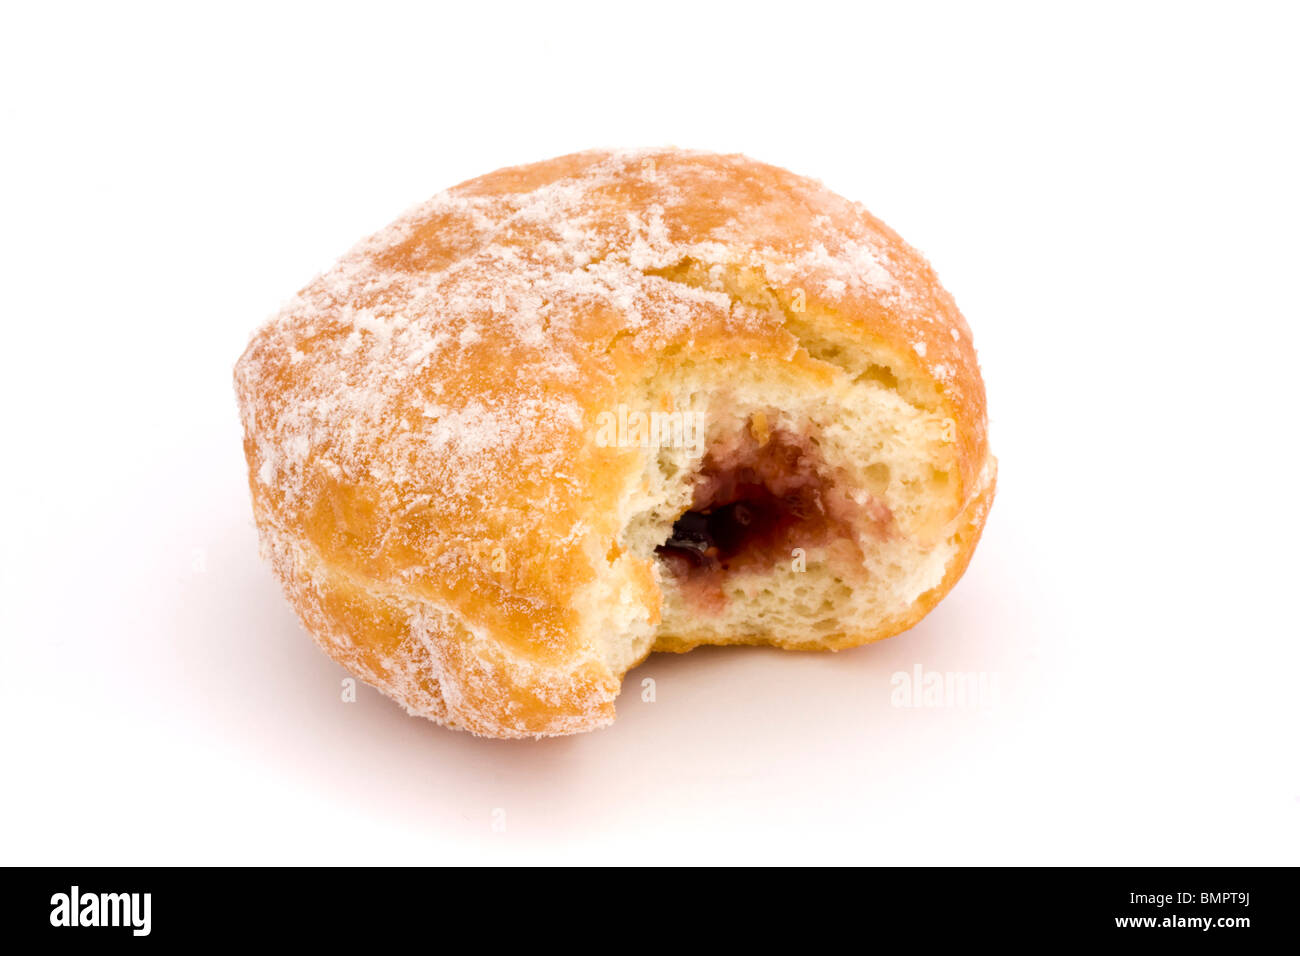 jam doughnut with a bite missing on a white background - Stock Image